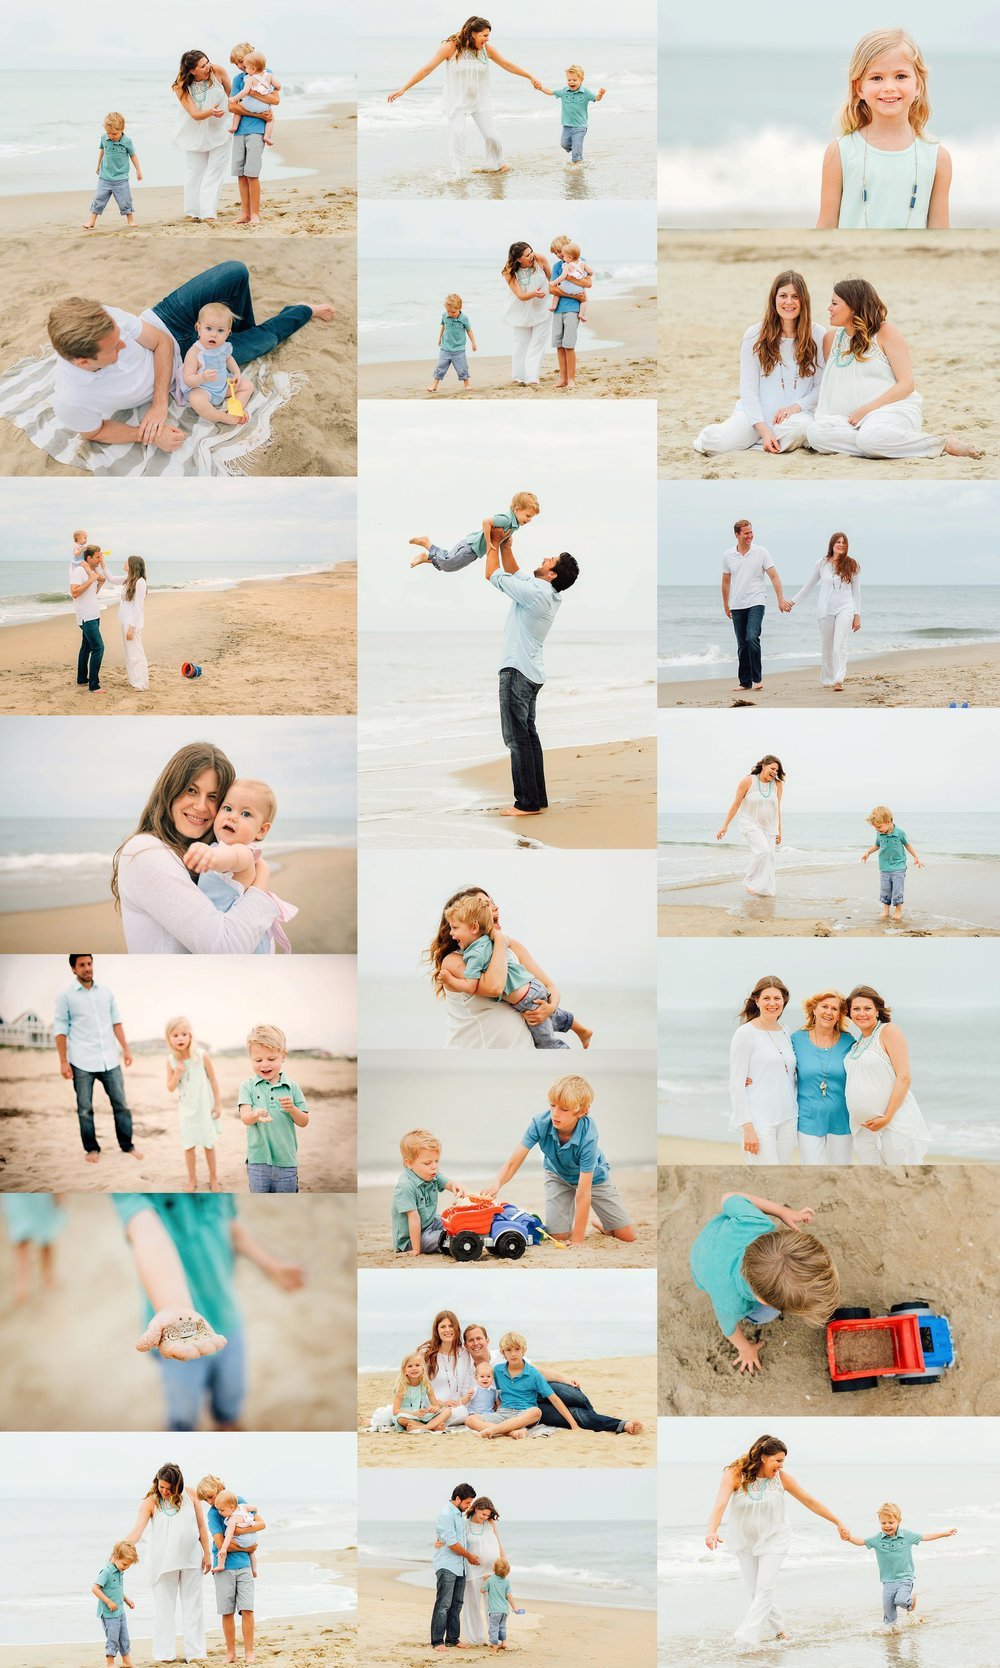 family-beach-photography-ideas-beach-photo-inspiration-lifestyle-photography-melissa-bliss-photography-virginia-beach-sandbridge-summer-vacation.jpg